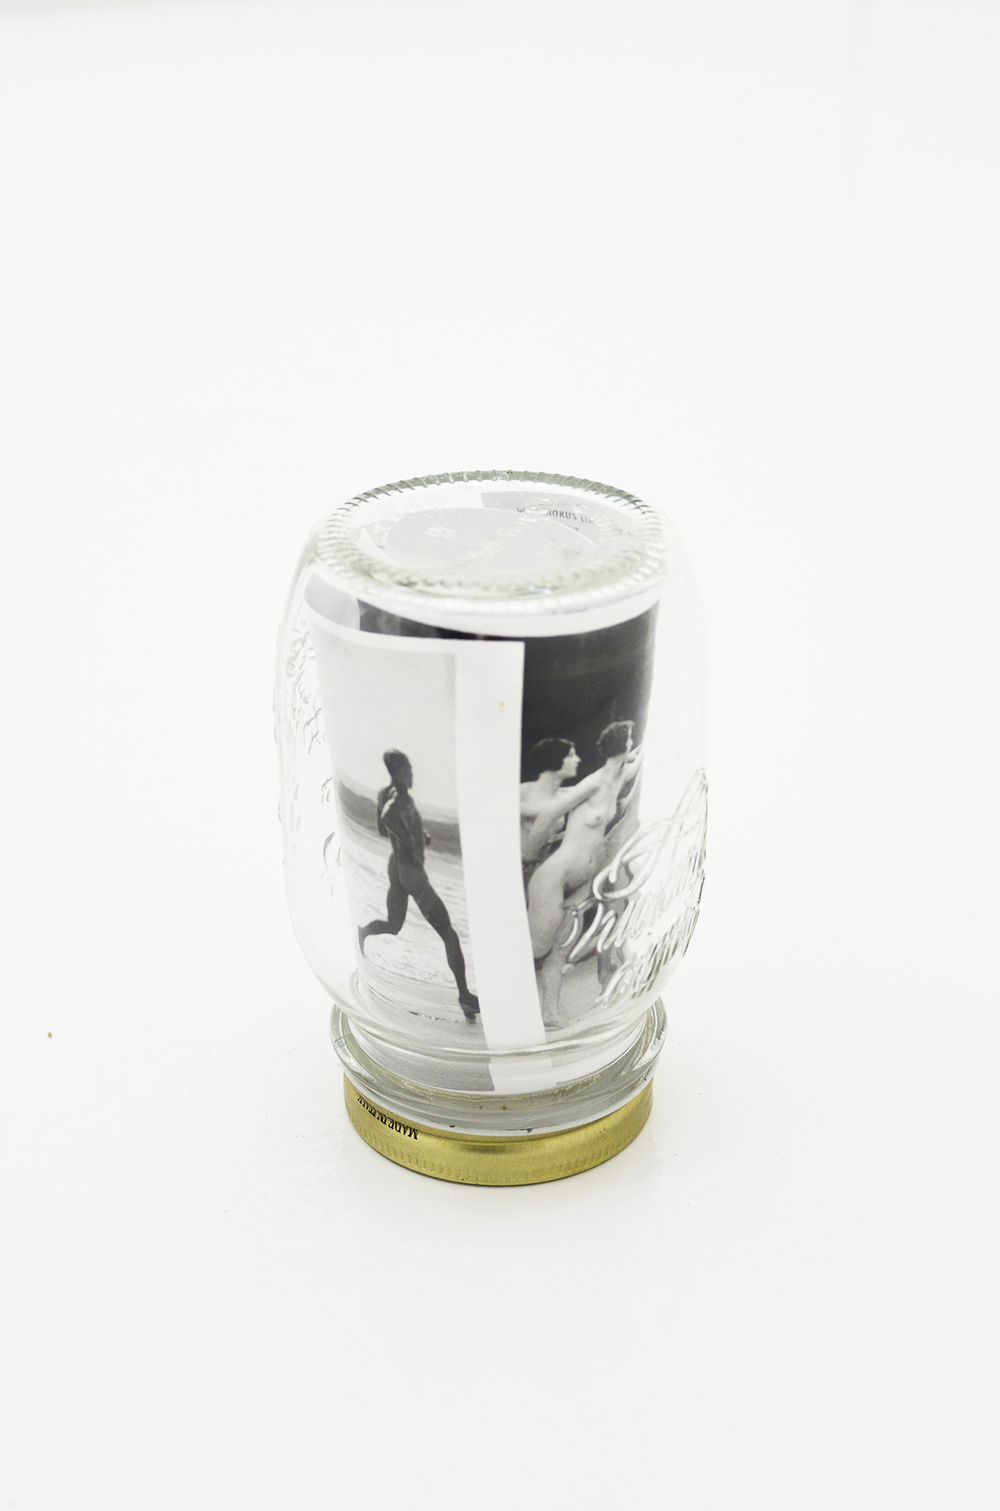 The Recipe (Four Seasons), 2010, jar and postcards, 14 x 9 diam